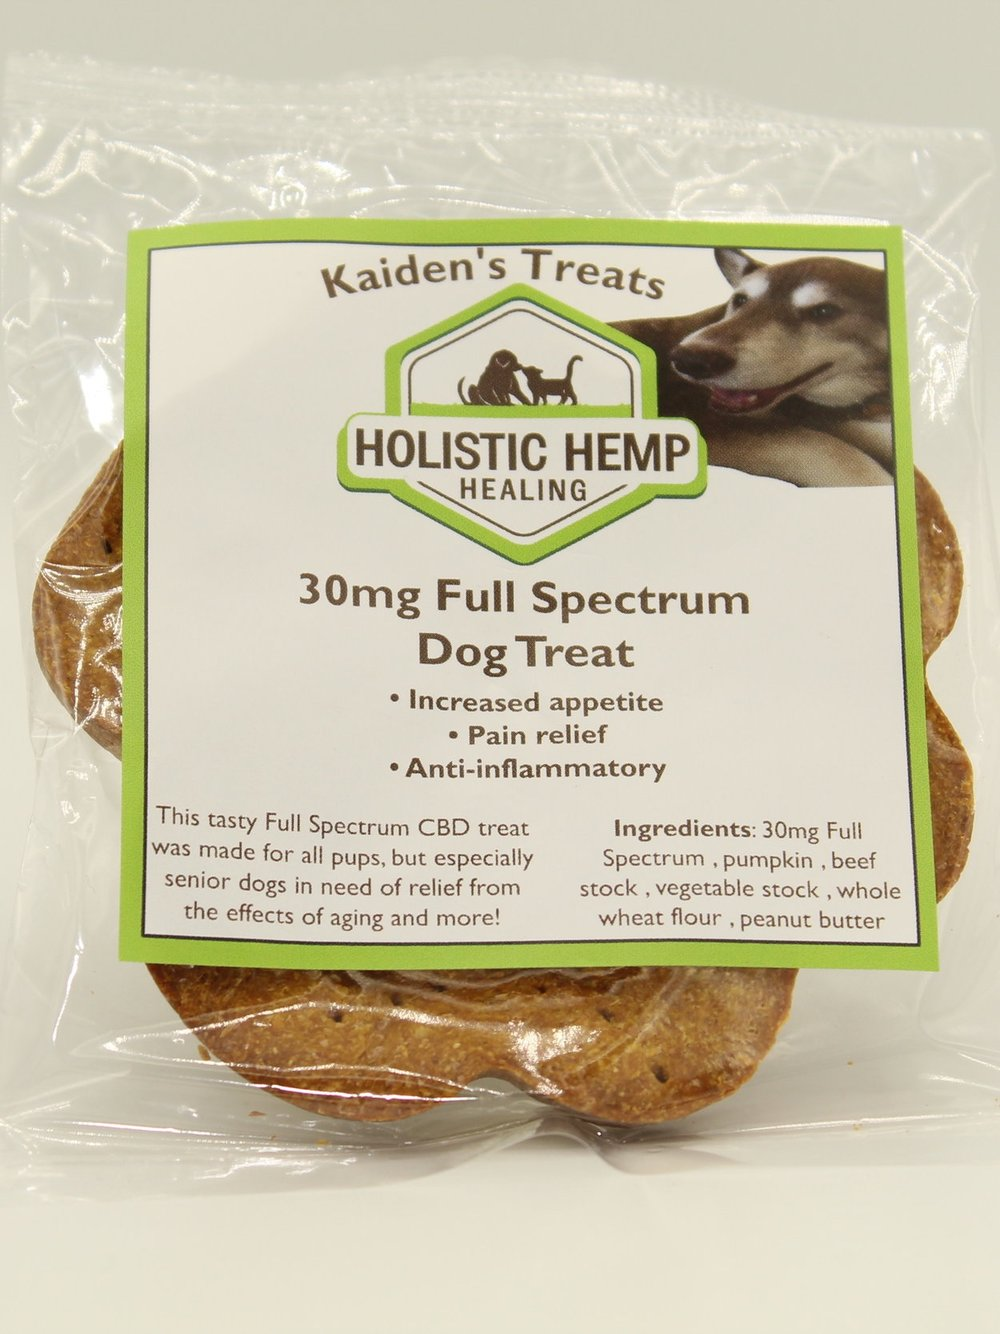 Kaiden's treat - $12This tasty Full Spectrum CBD infused dog treat was made for all pups, but especially senior dogs in need of relief from the effects of aging and more!Ingredients30 mg Full Spectrum CBD Oil derived from industrial hemp, Pumpkin, Beef Stock, Vegetable Stock, Whole Wheat Flour, and Peanut ButterDosageA whole treat may not appropriate for all dog, as you may feel as little as quarter of a treat is comfortable for them. It is best to start with less and adjust accordingly.